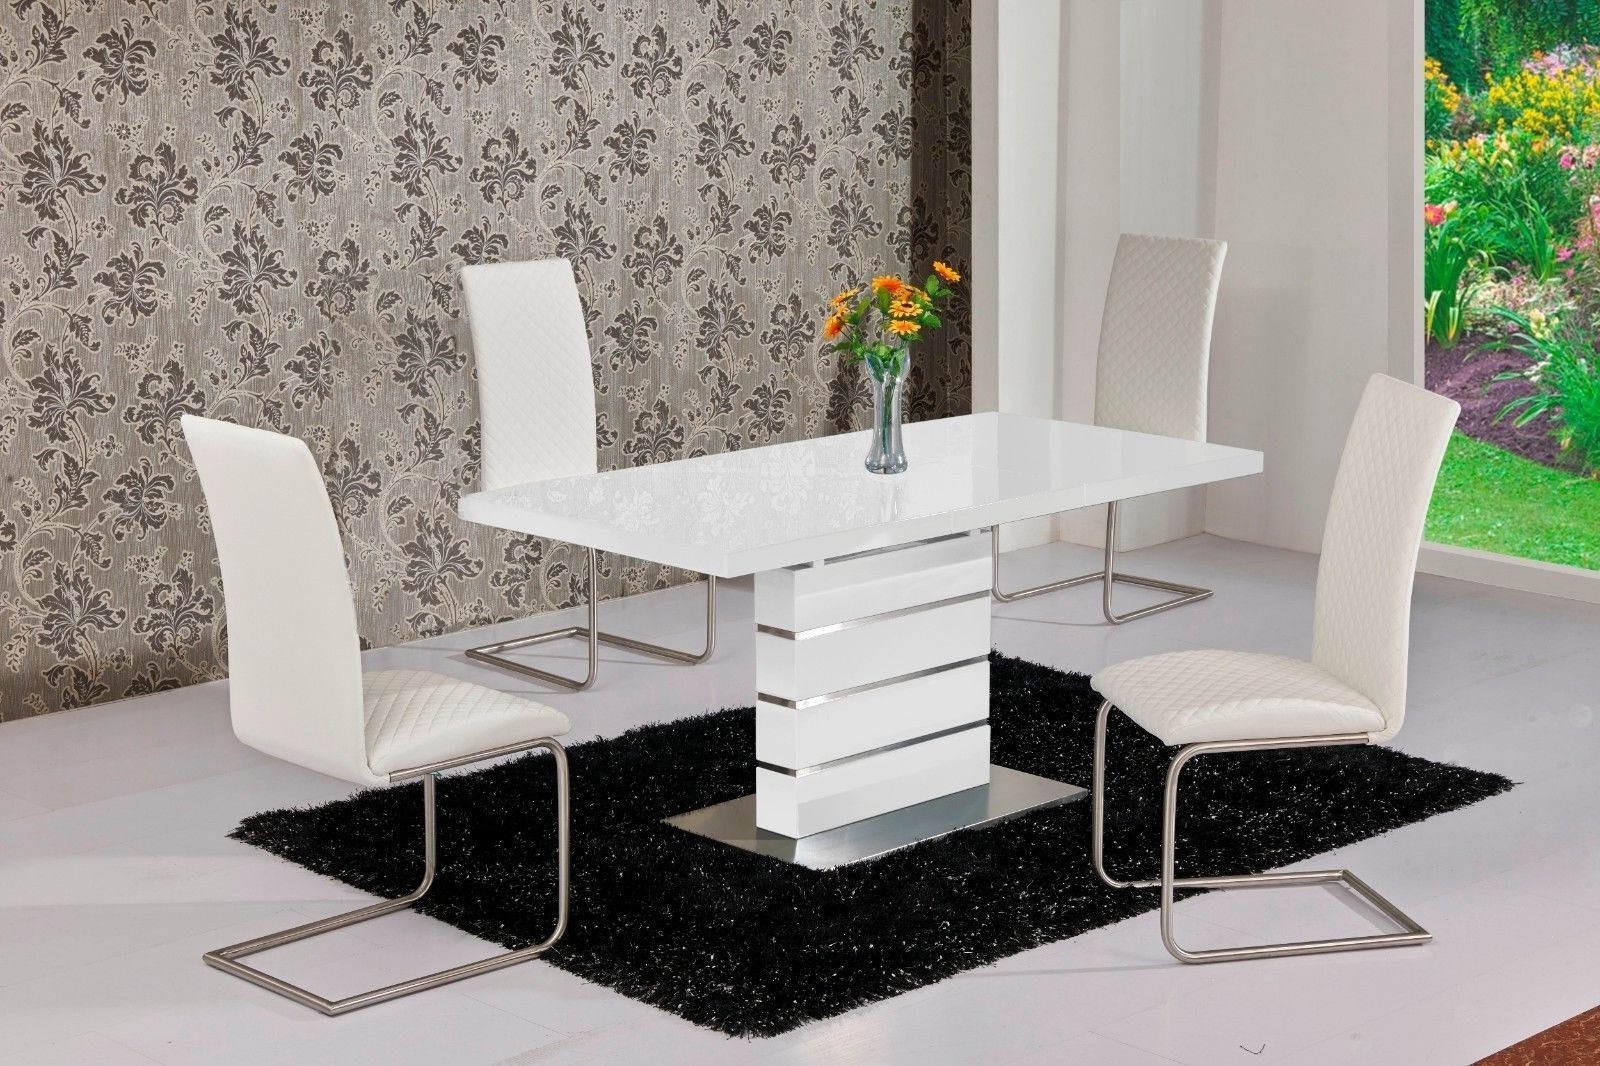 Mace High Gloss Extending 120 160 Dining Table & Chair Set – White Intended For Most Up To Date Extending Dining Room Tables And Chairs (Gallery 4 of 25)